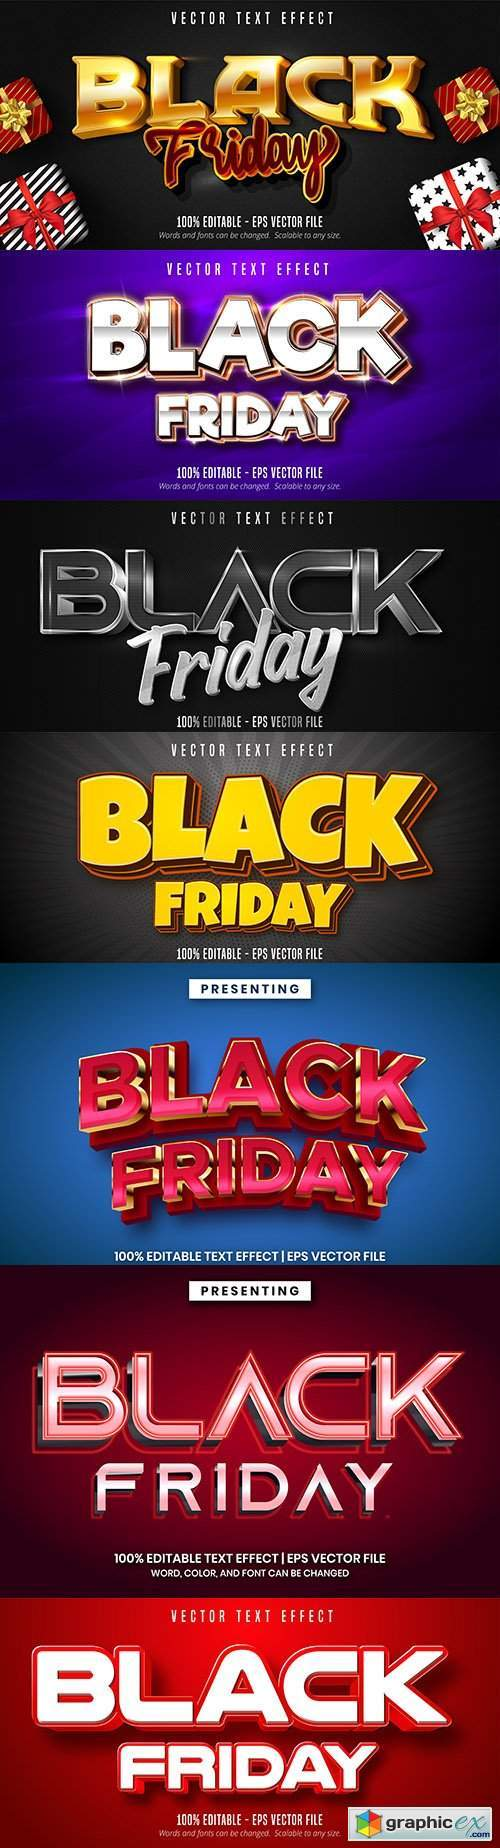 Black Friday Editable font effect text illustration design